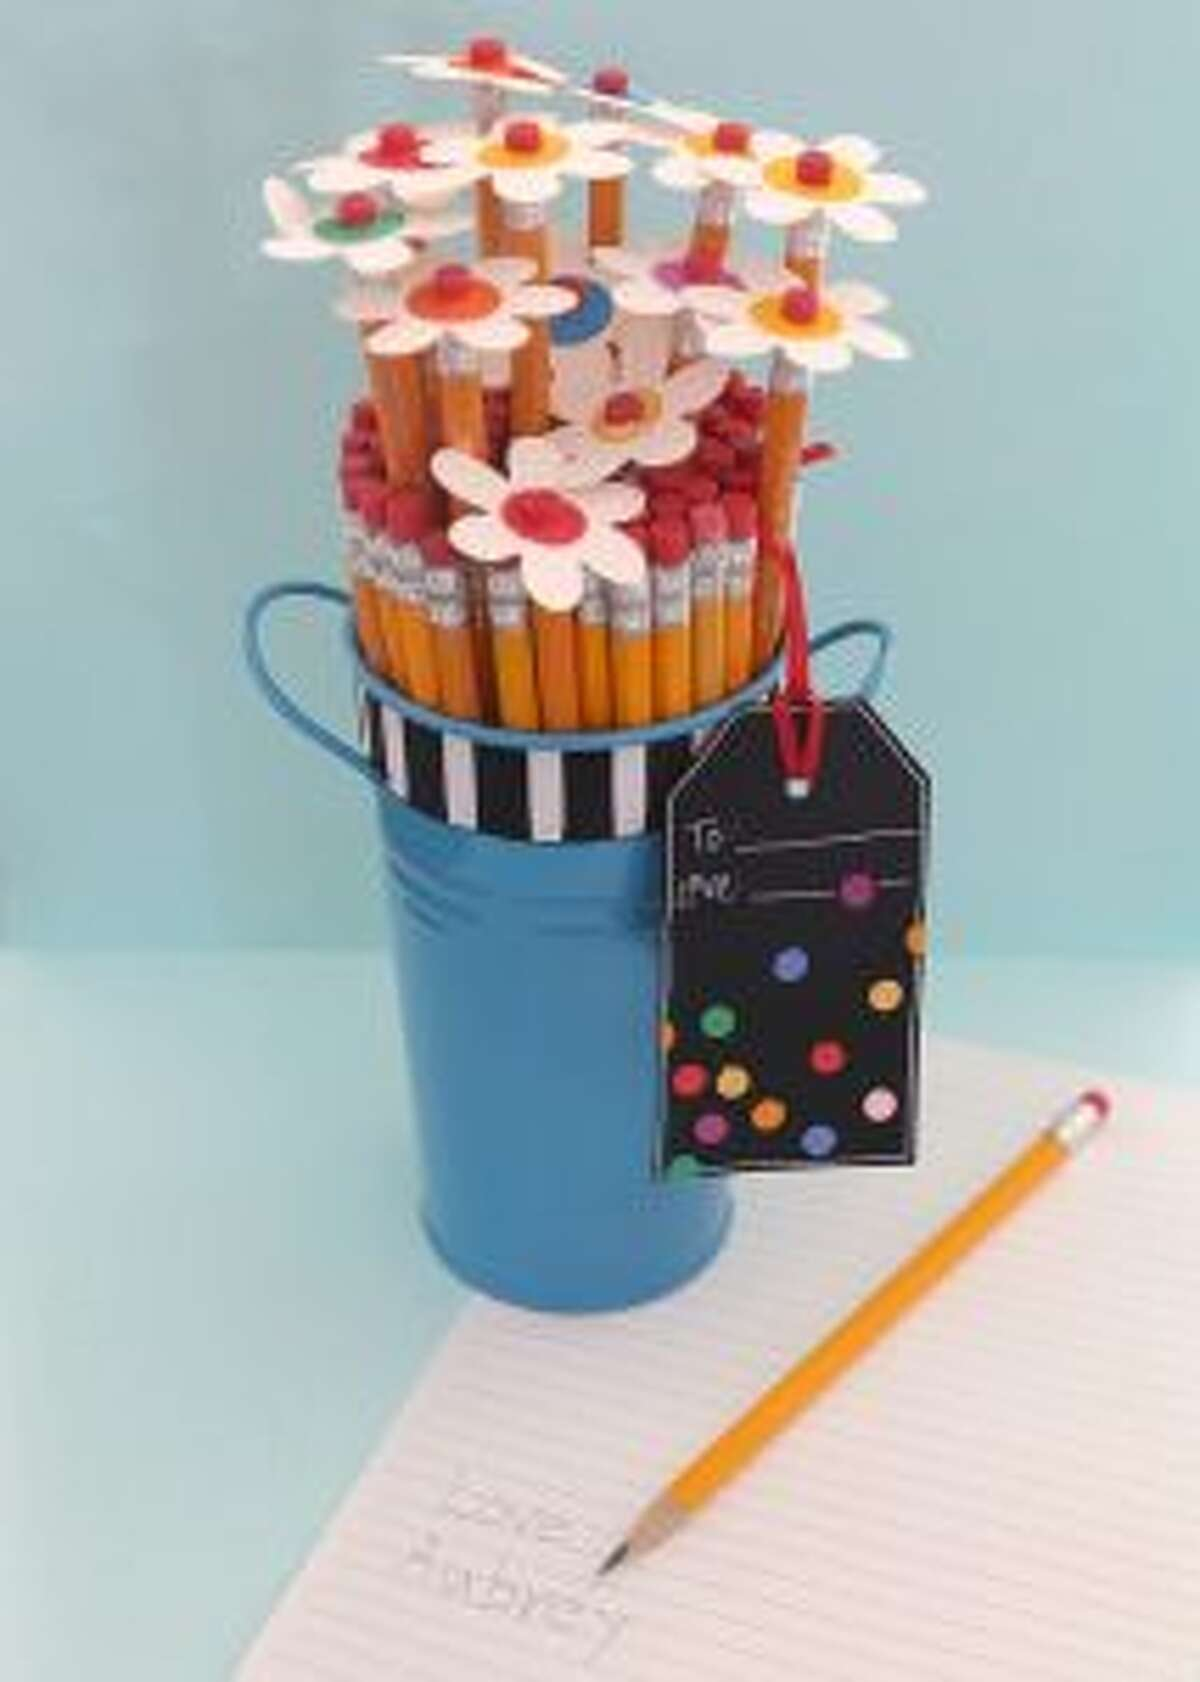 When you head off to the store to purchase school supplies for your kids, why not grab some extras to donate to the class and set the tone for a great school year? (Cara Mariano)